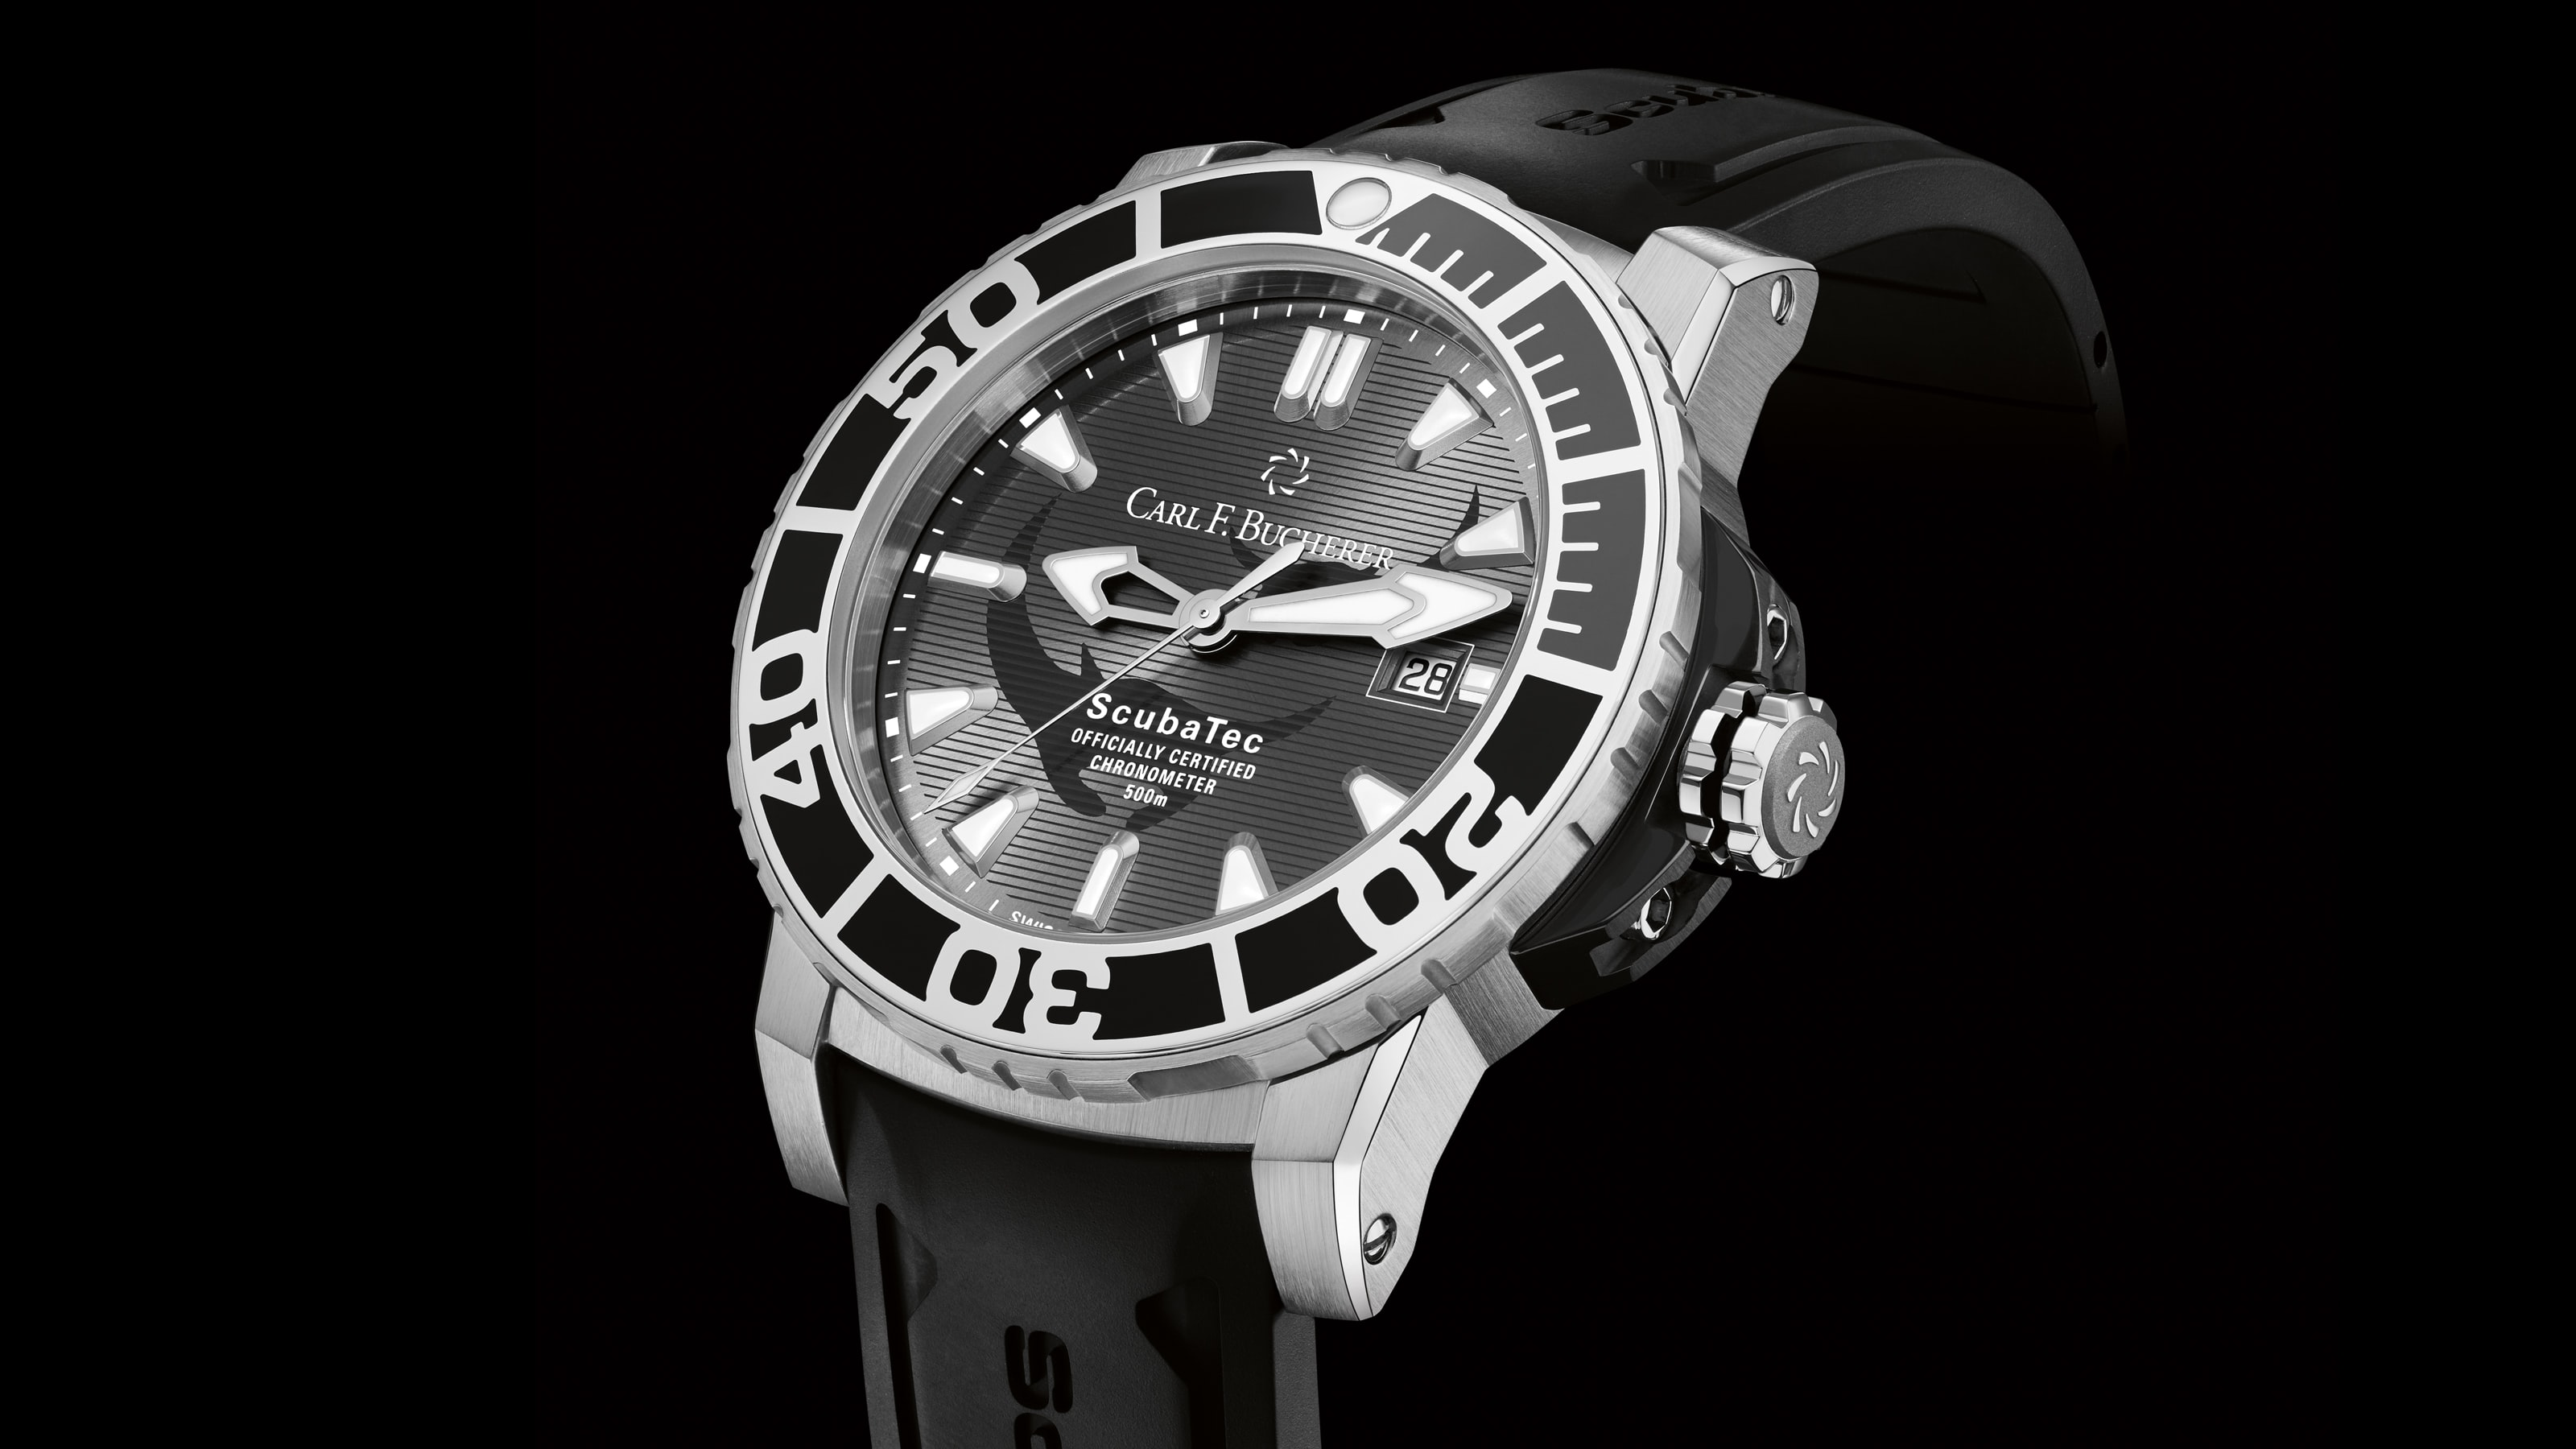 Manta hero.jpg?ixlib=rails 1.1  Introducing: The Carl F. Bucherer Patravi ScubaTec Manta Trust manta hero